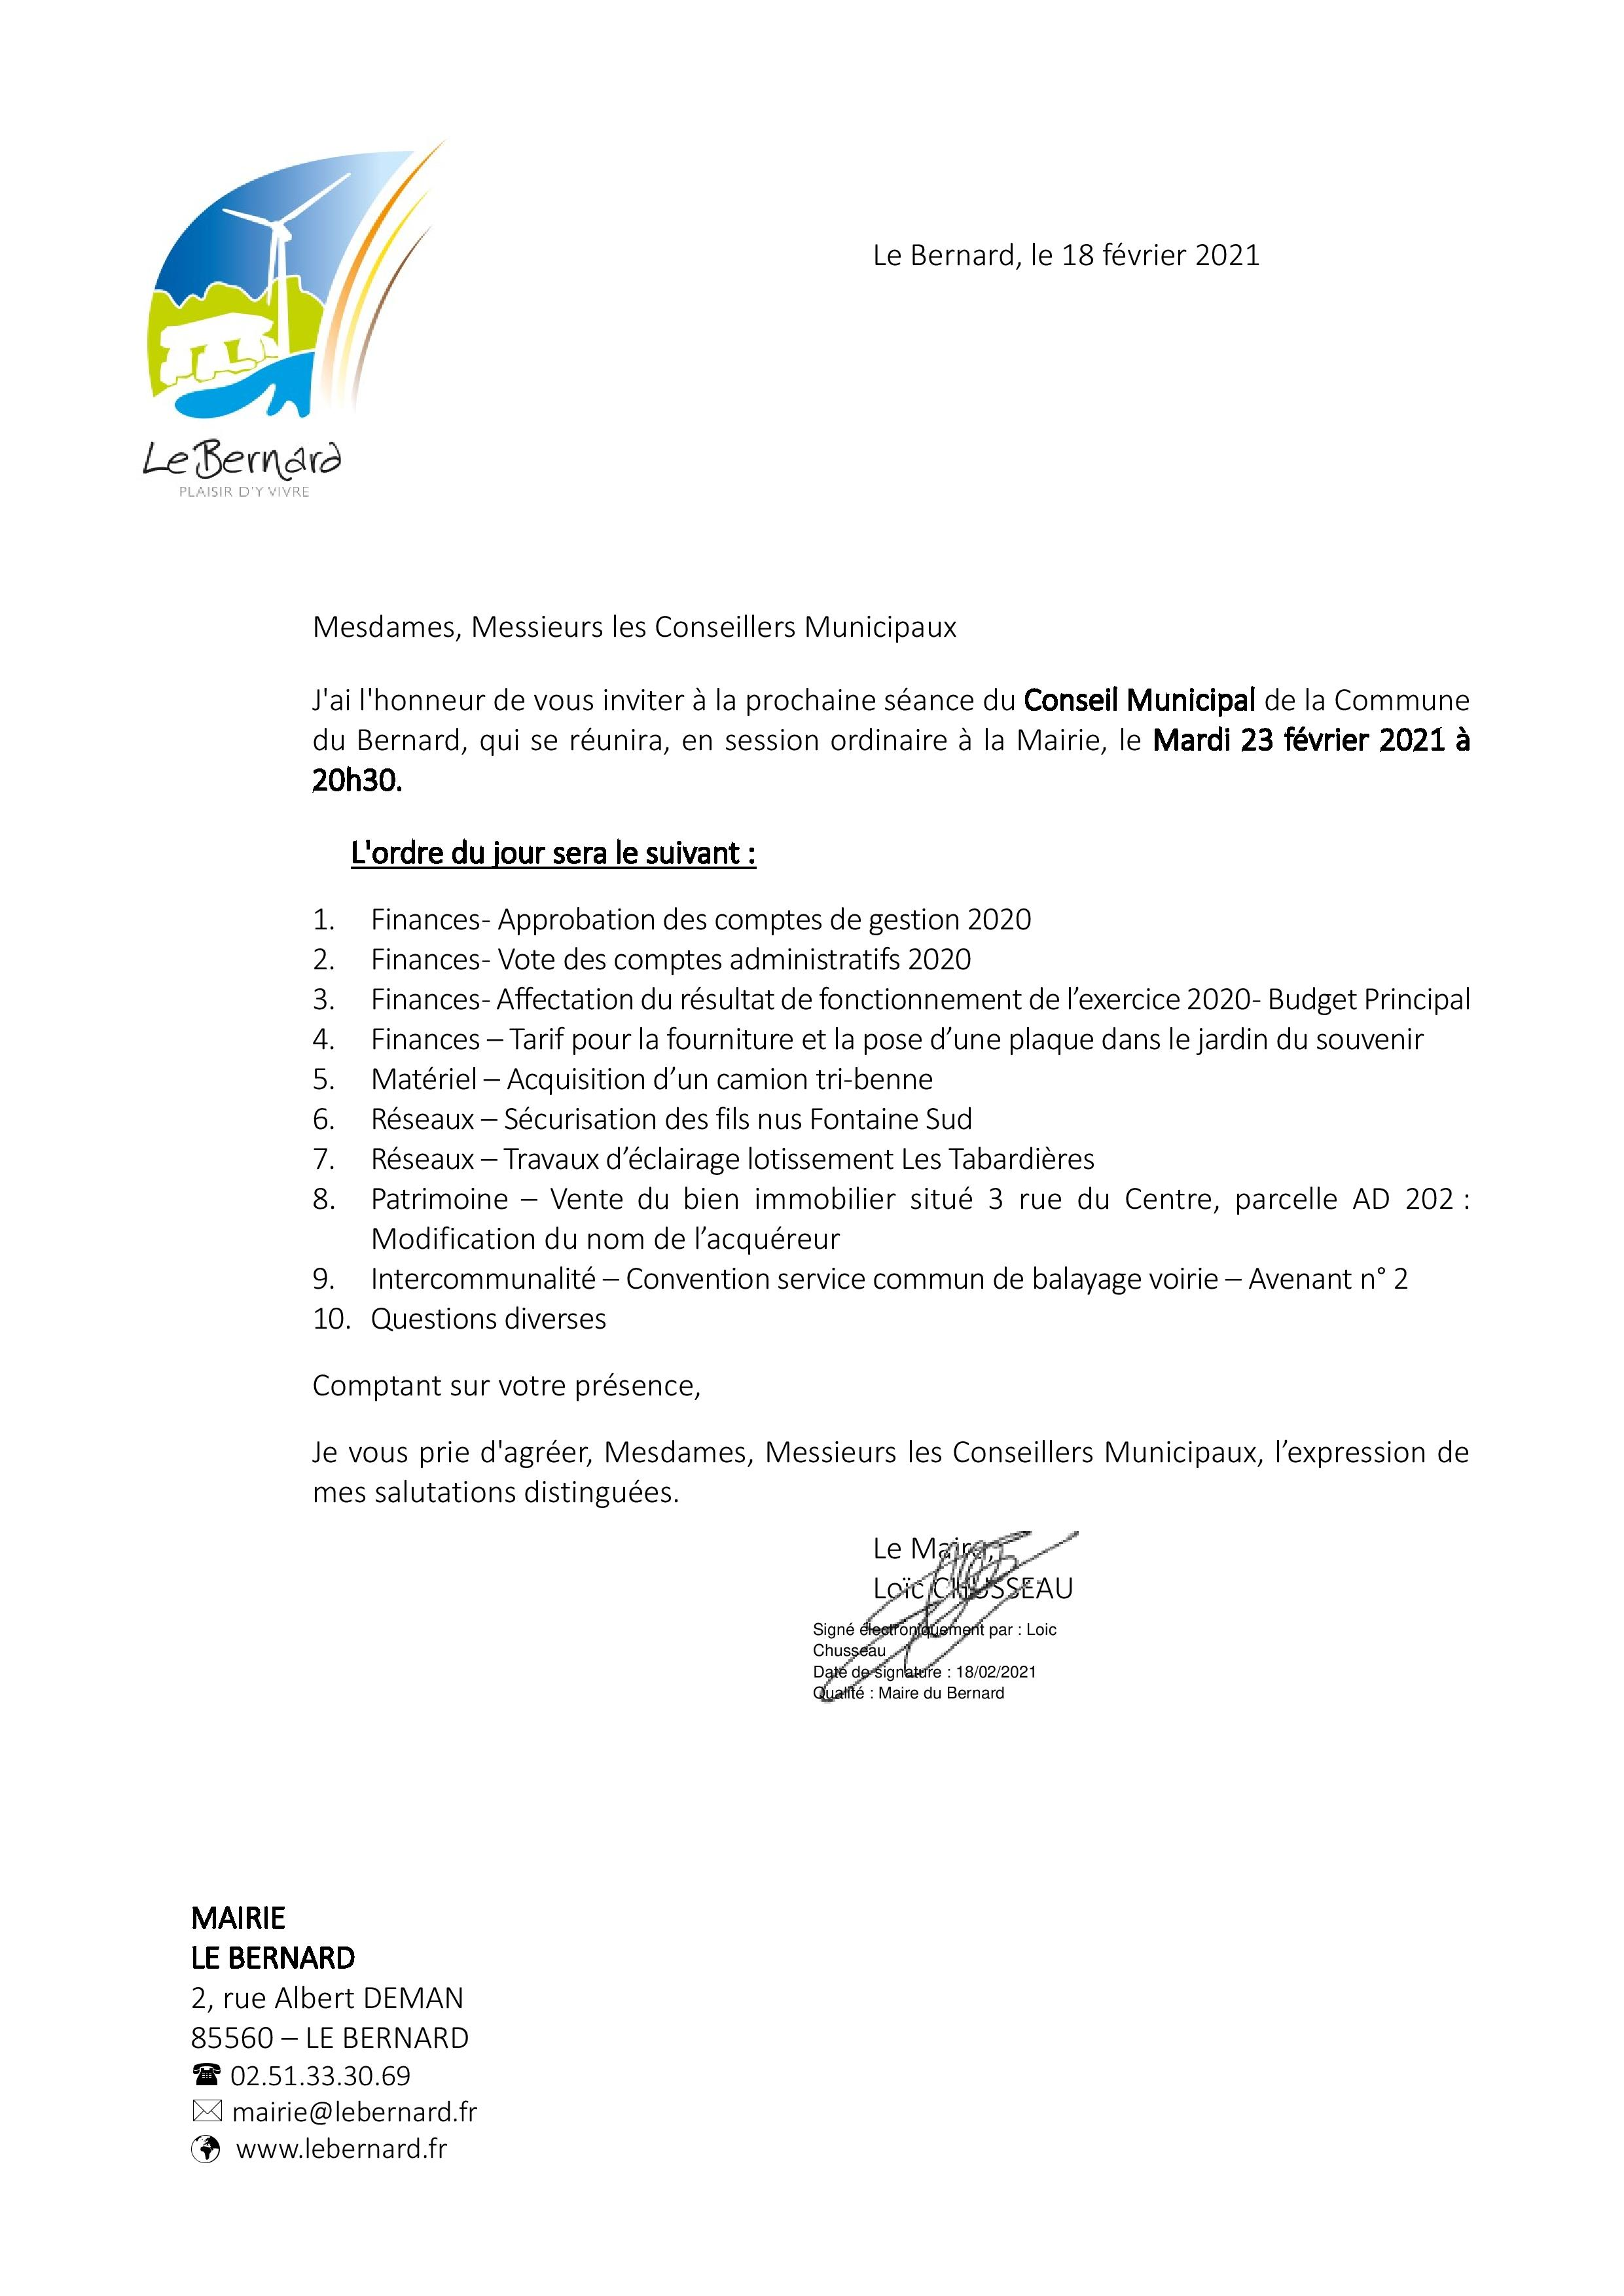 convocation_signe (8)-page-001 (1)